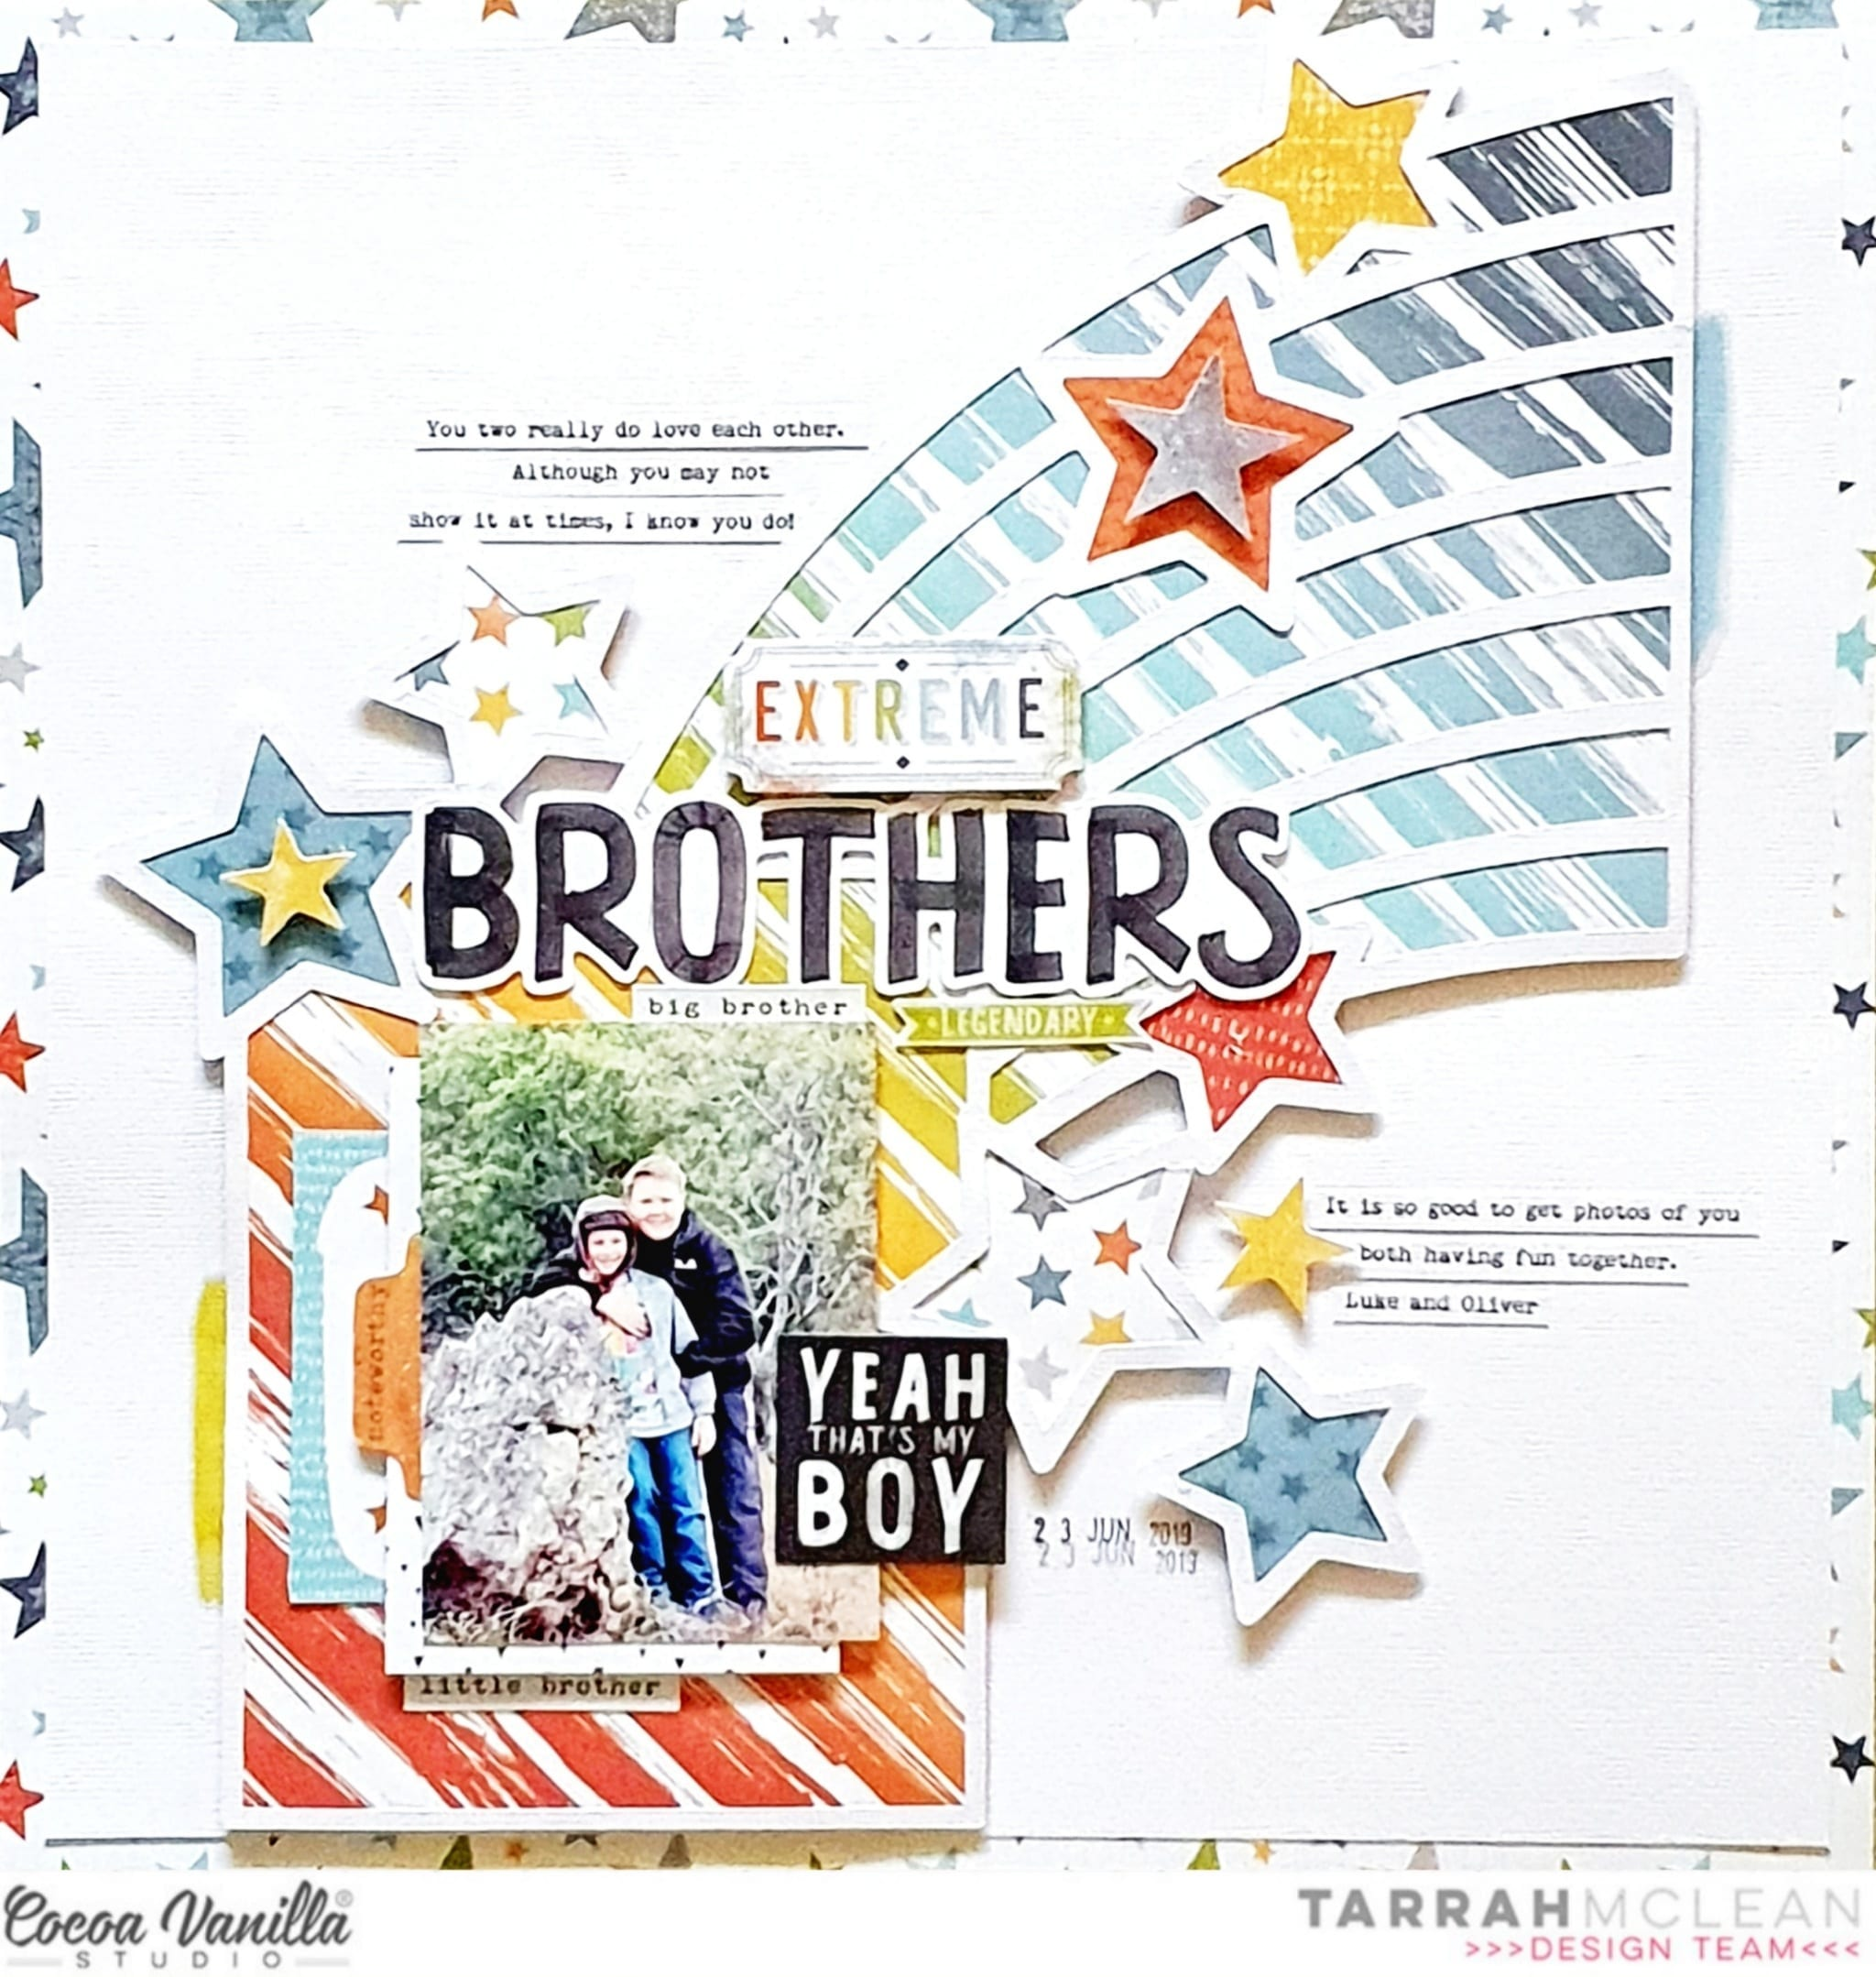 Brothers   Legendary collection   Tarrah McLean